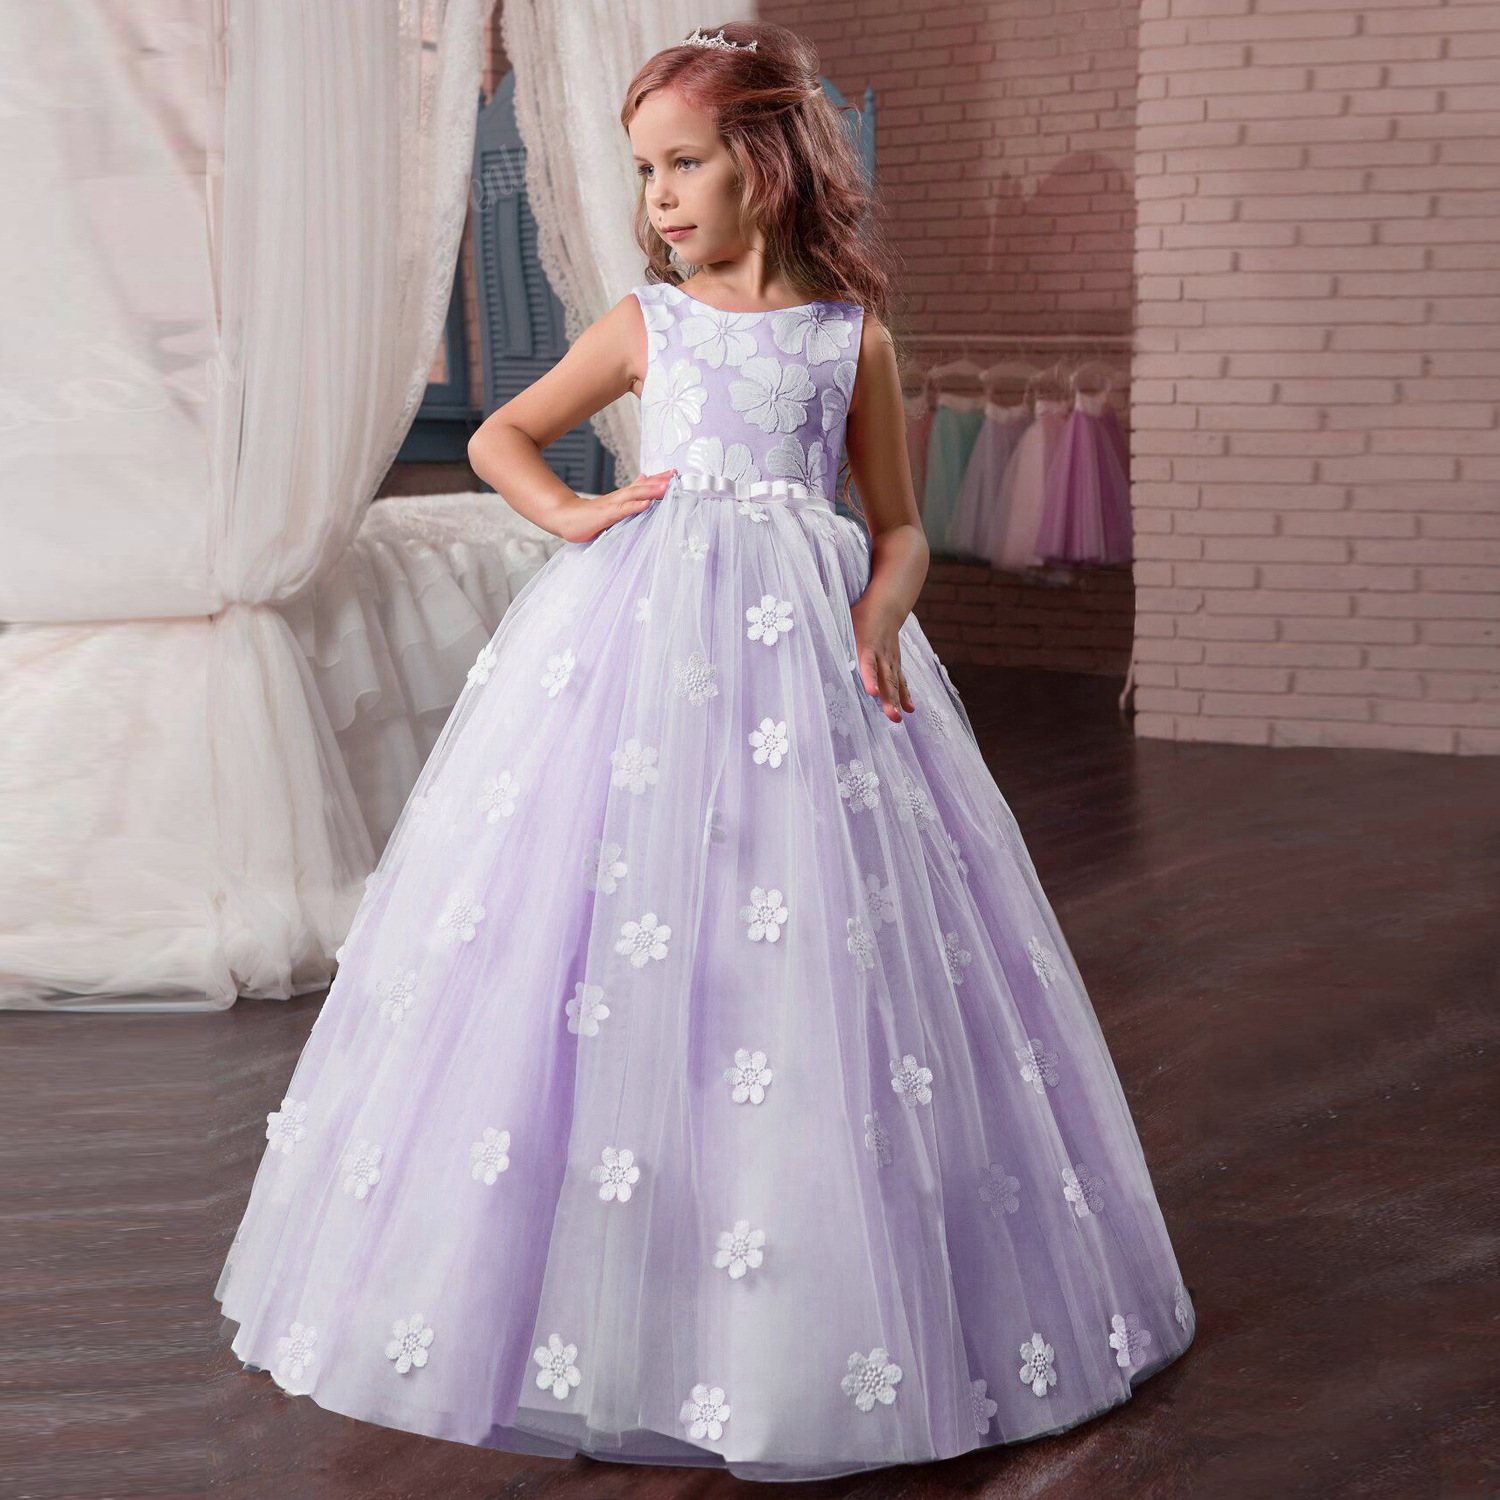 New Flower Girls Dress Children Sleeveless Flower Applique Long Maxi Tulle Dress Girls Party DressNew Flower Girls Dress Children Sleeveless Flower Applique Long Maxi Tulle Dress Girls Party Dress